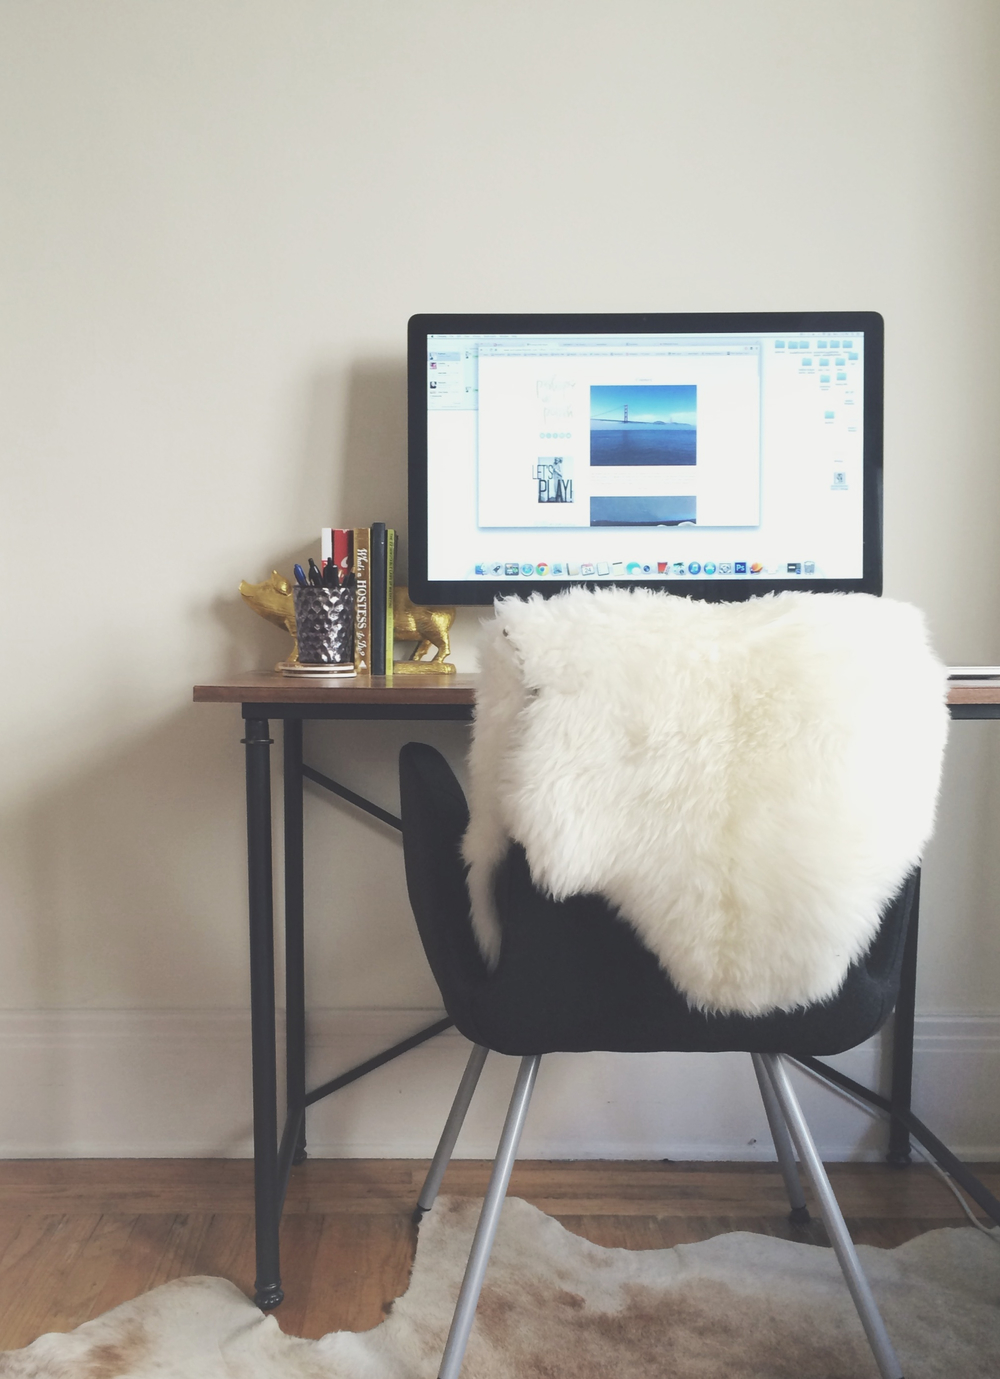 My desk. I usually don't have that sheepskin thing out, but it's been cold...